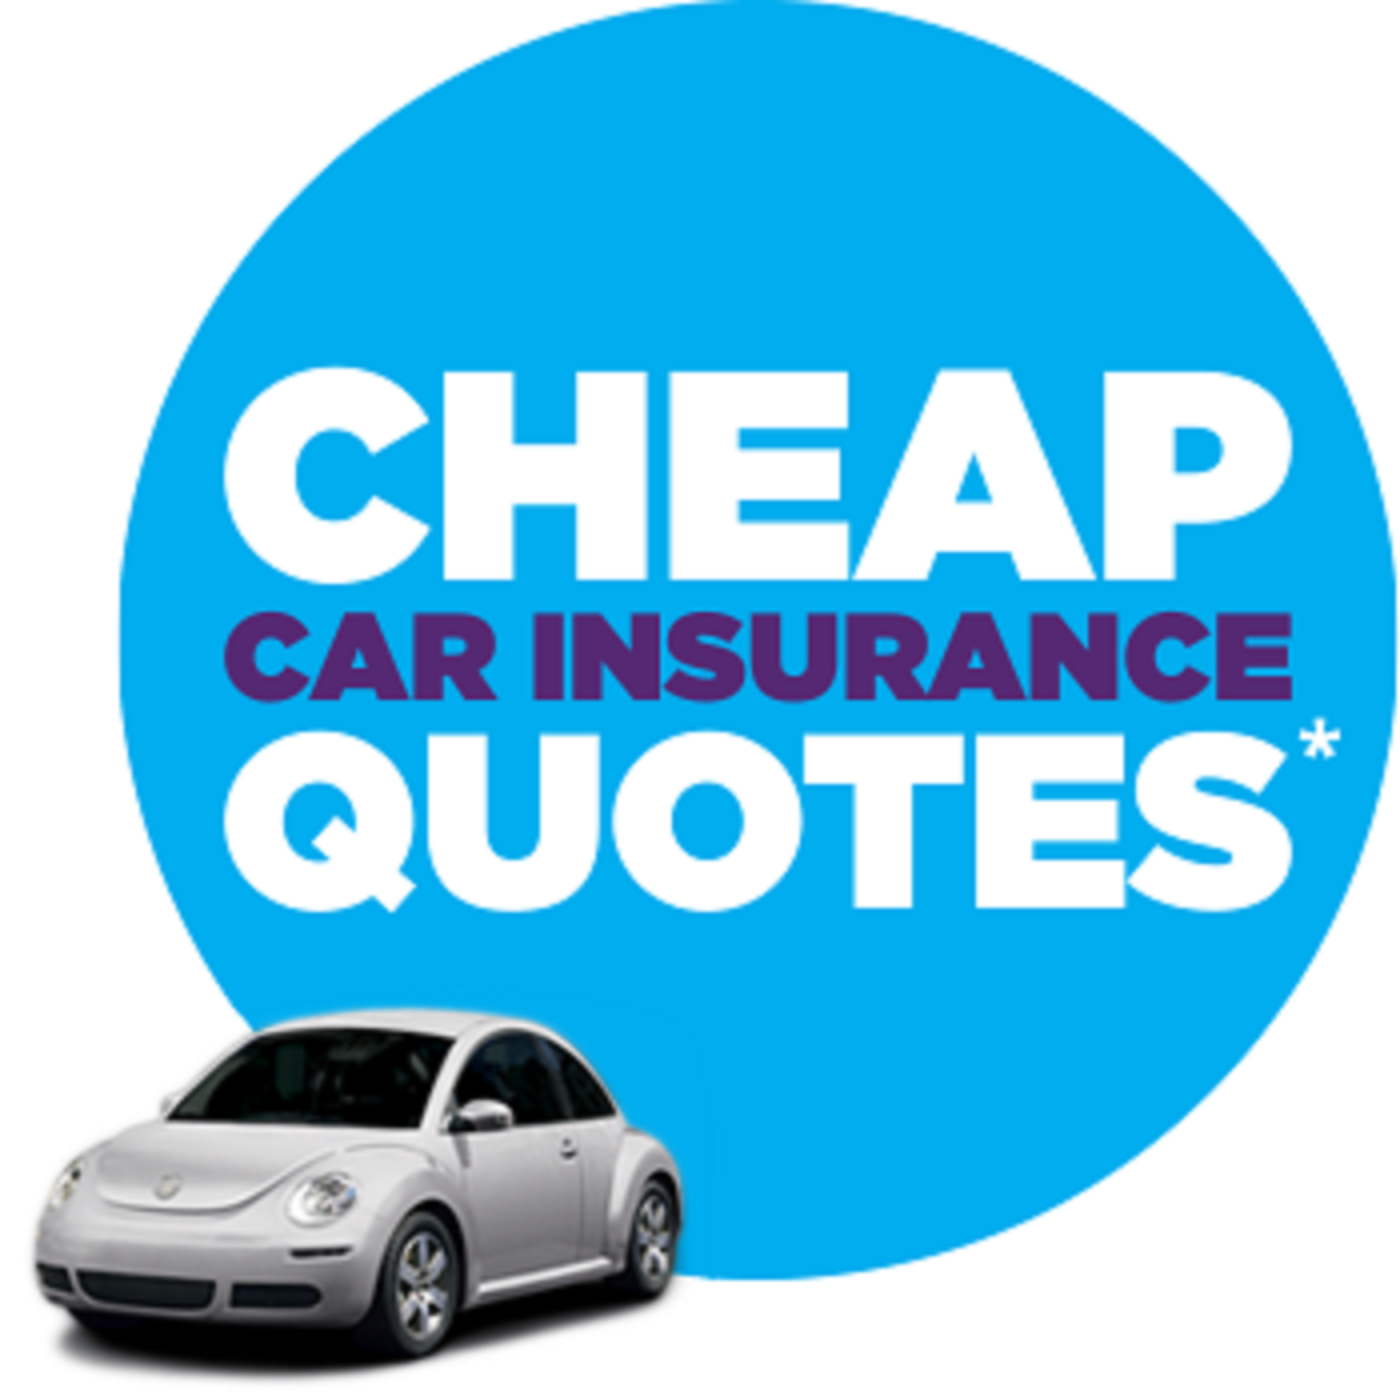 30 Awesome Car Insurance Quotes Free in 2020 Cheap car